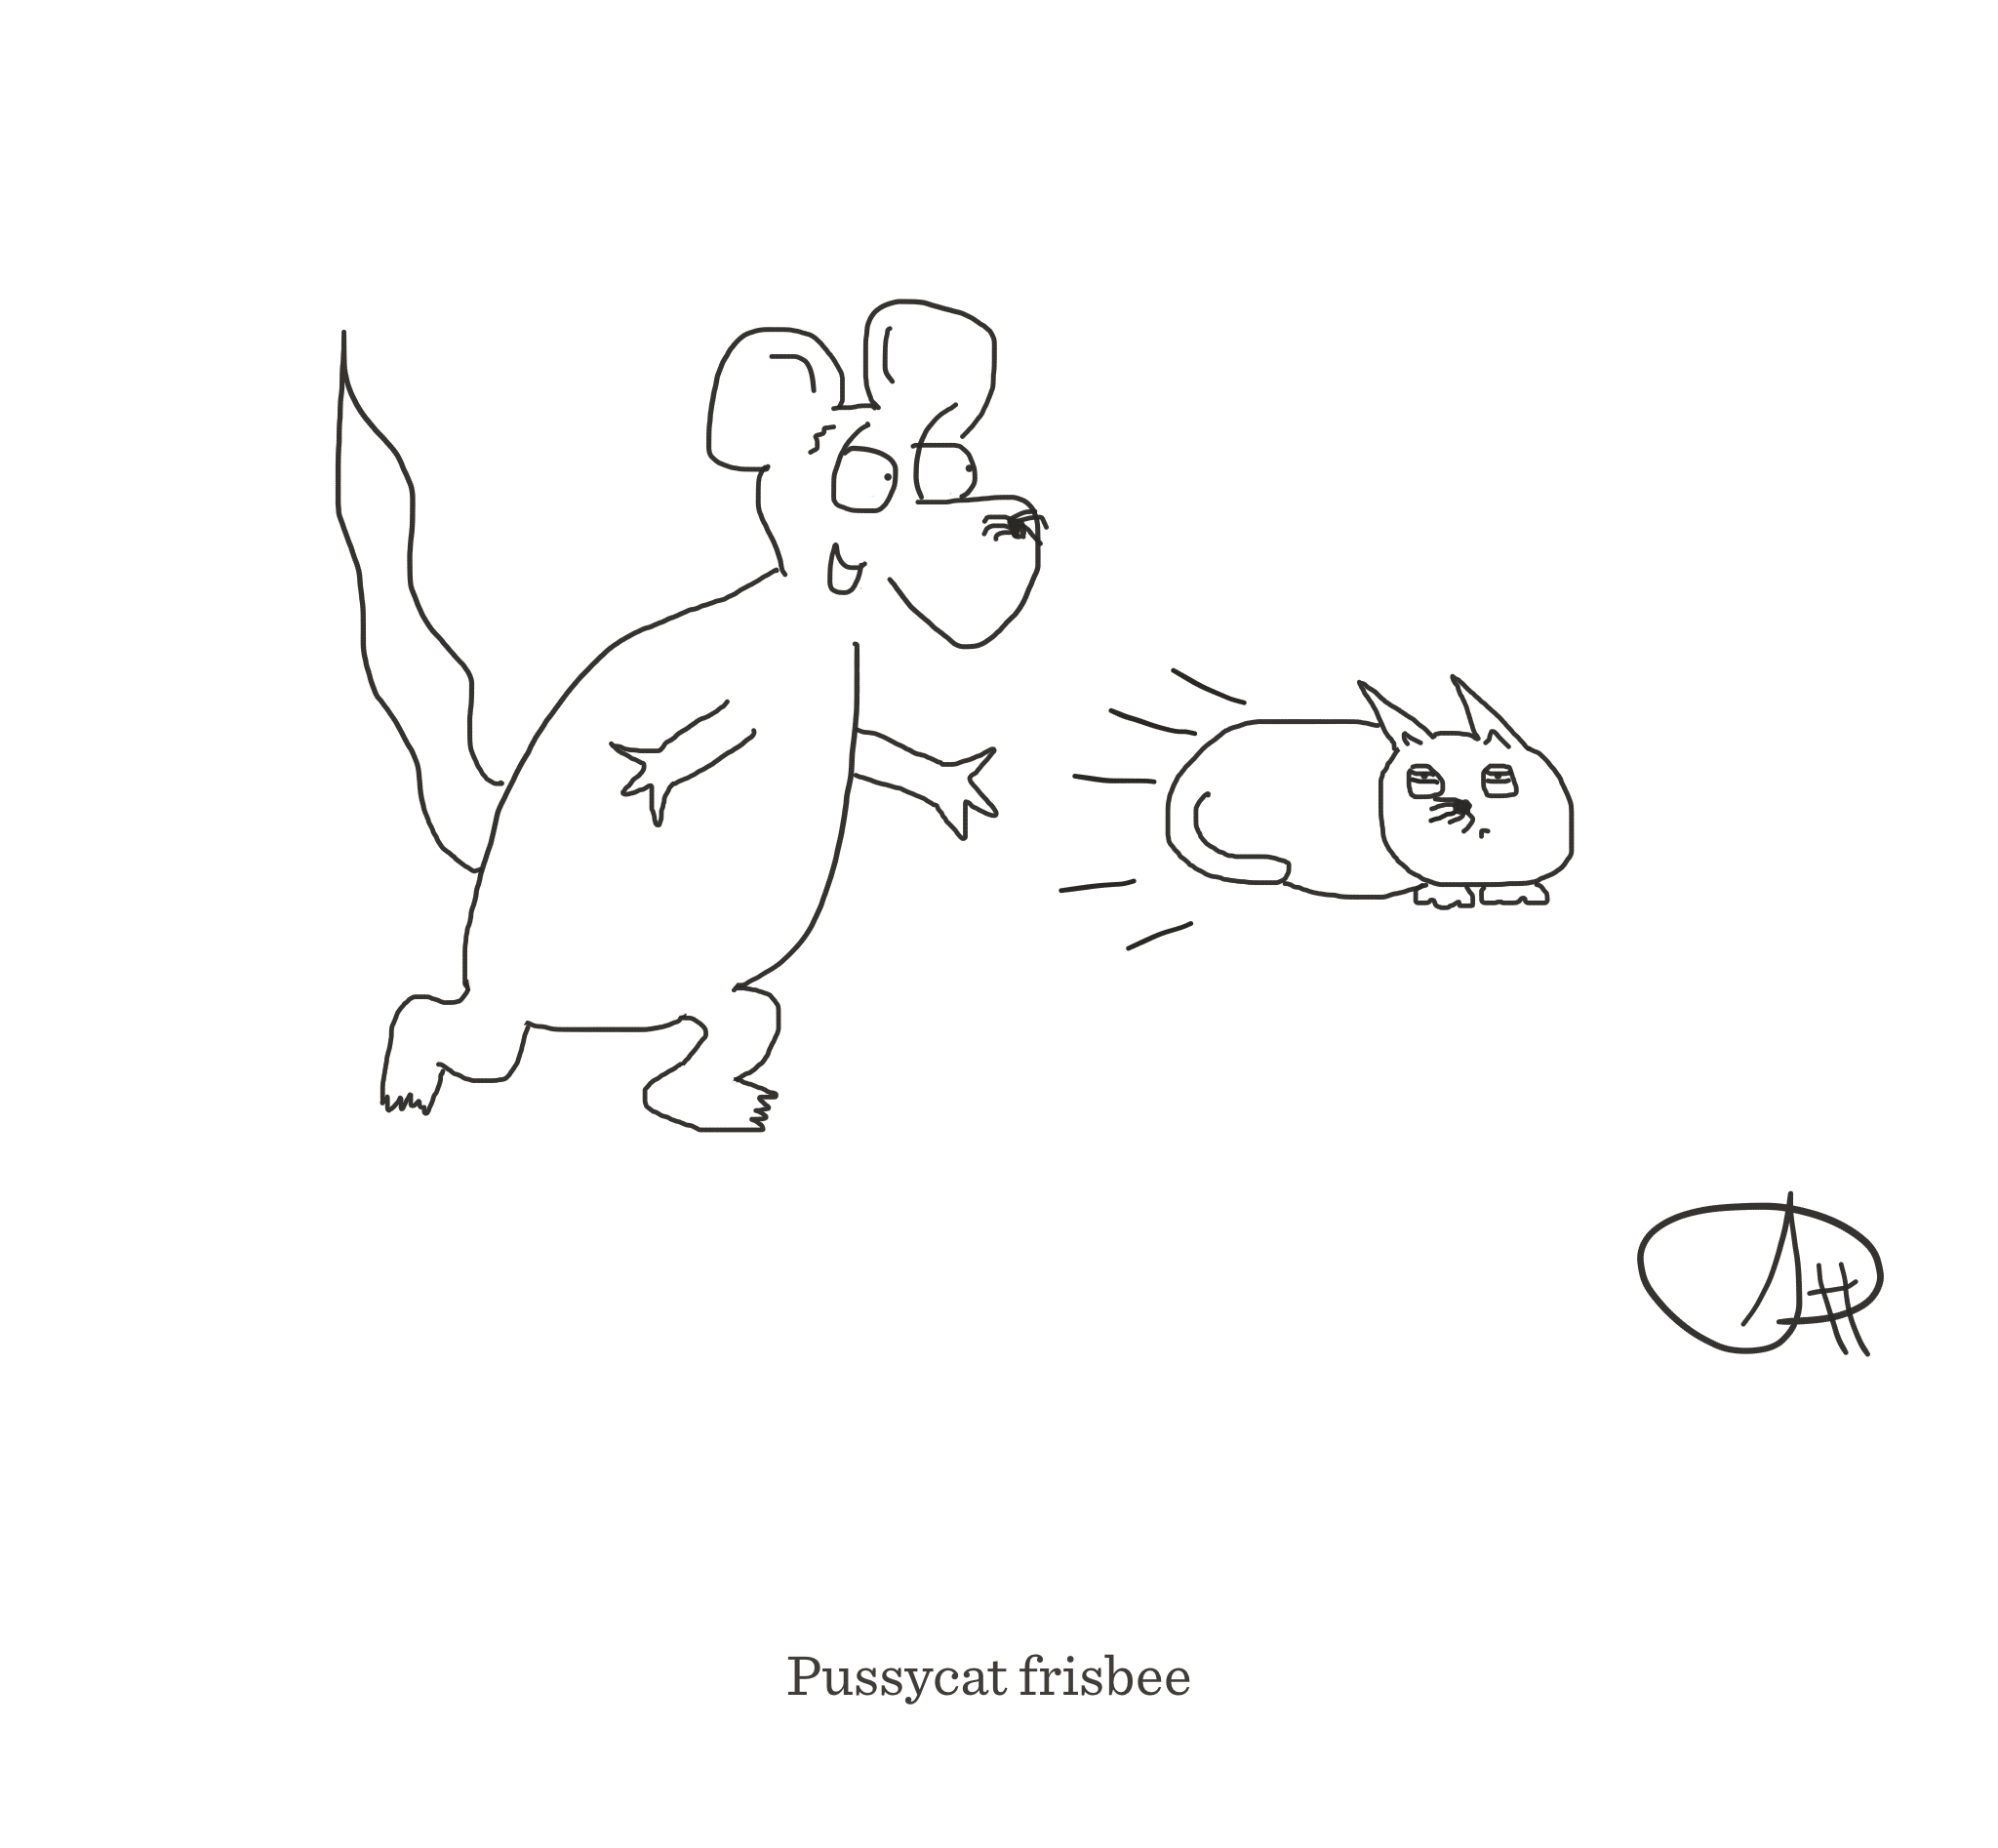 Pussycat frisbee, The Happy Rat cartoon